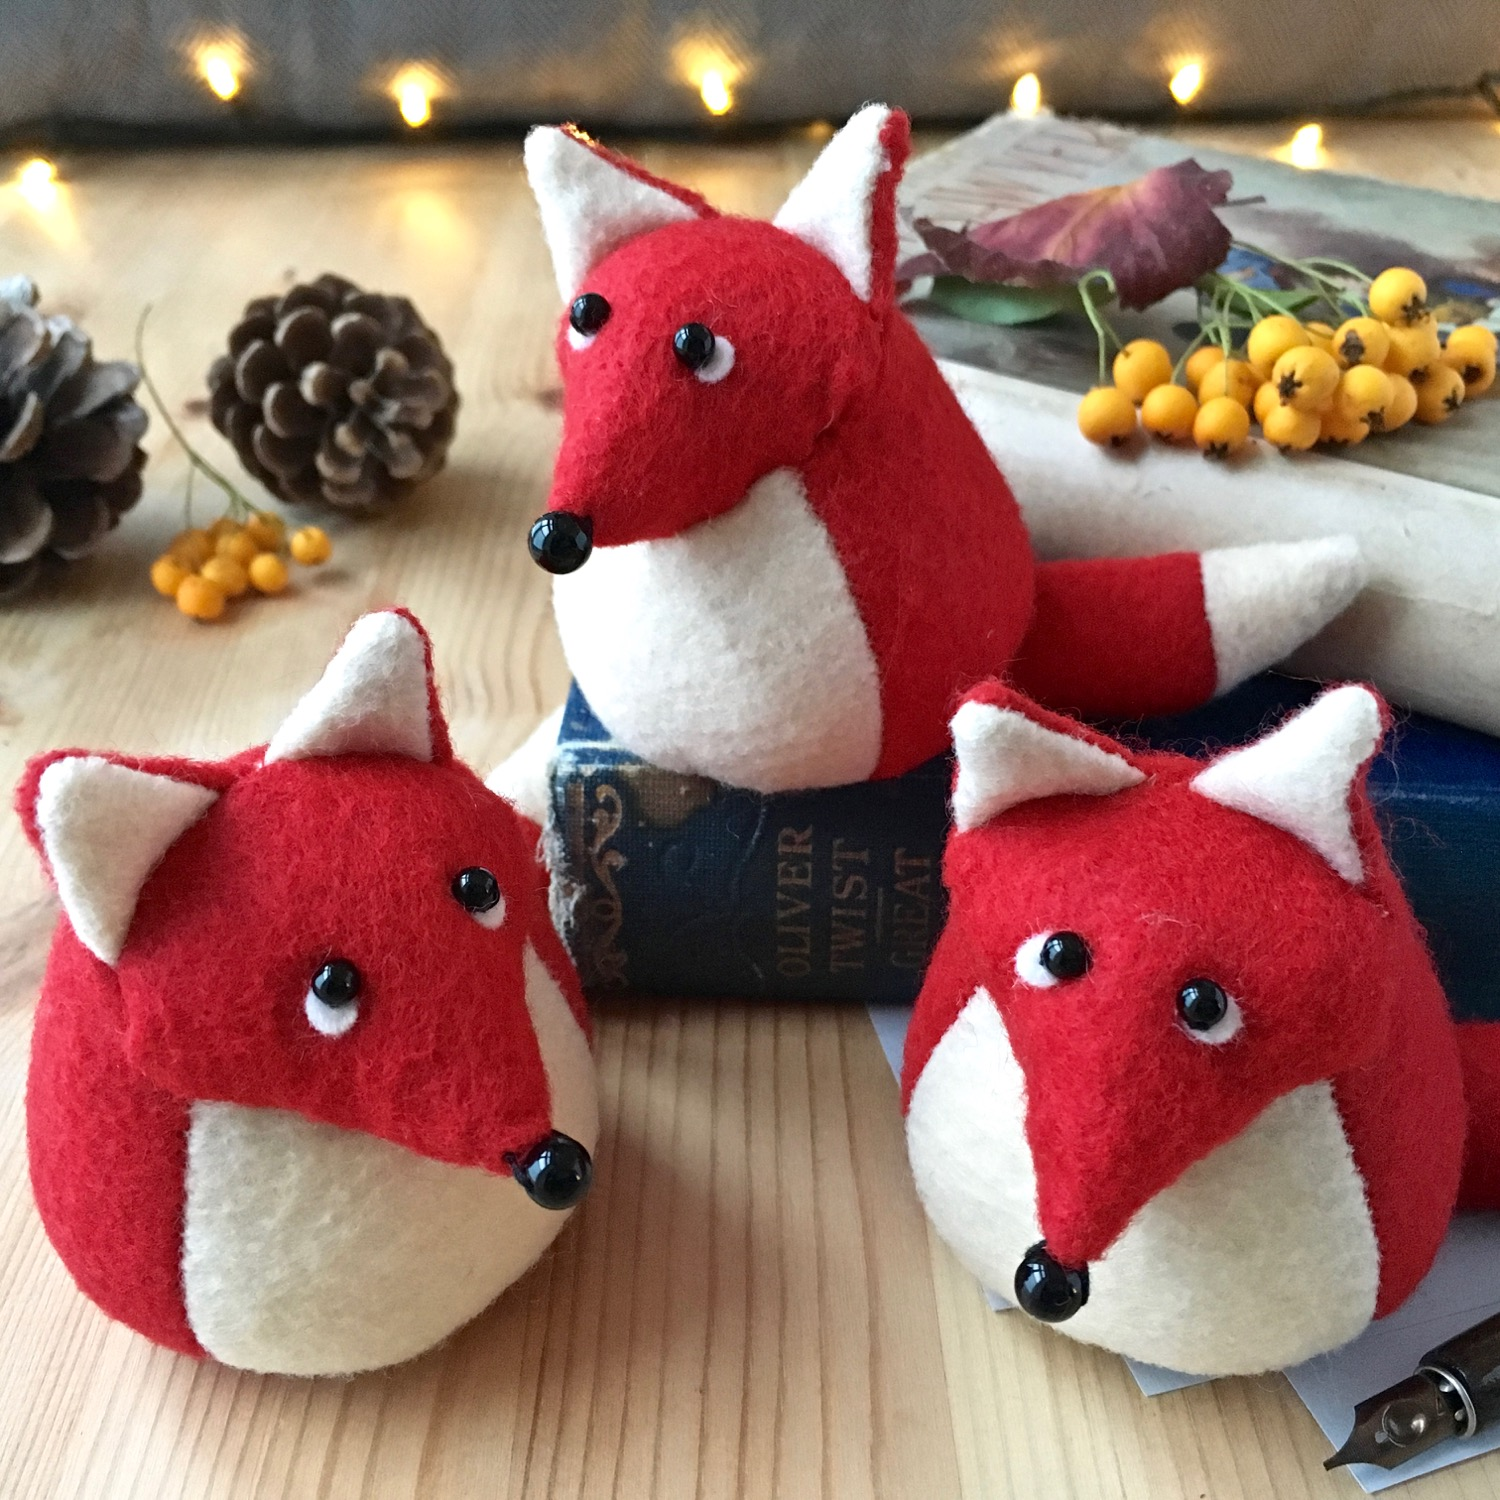 Findlay The Fox paperweight handmade from Kunin eco felt | by Bilberry Woods.jpg